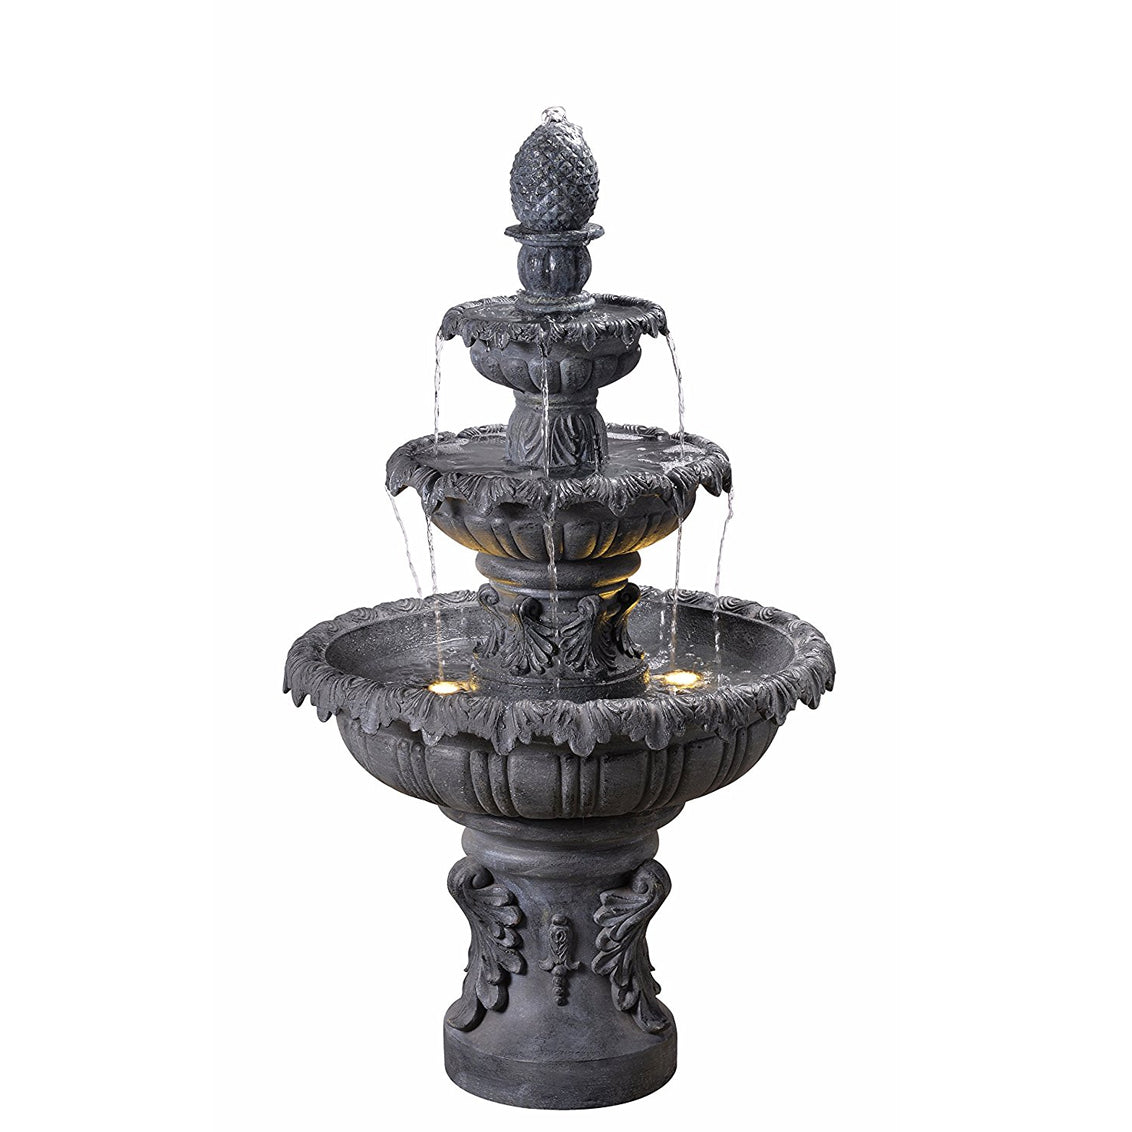 Ibiza Tiered Outdoor Fountain in Zinc Finish - Soothing Walls